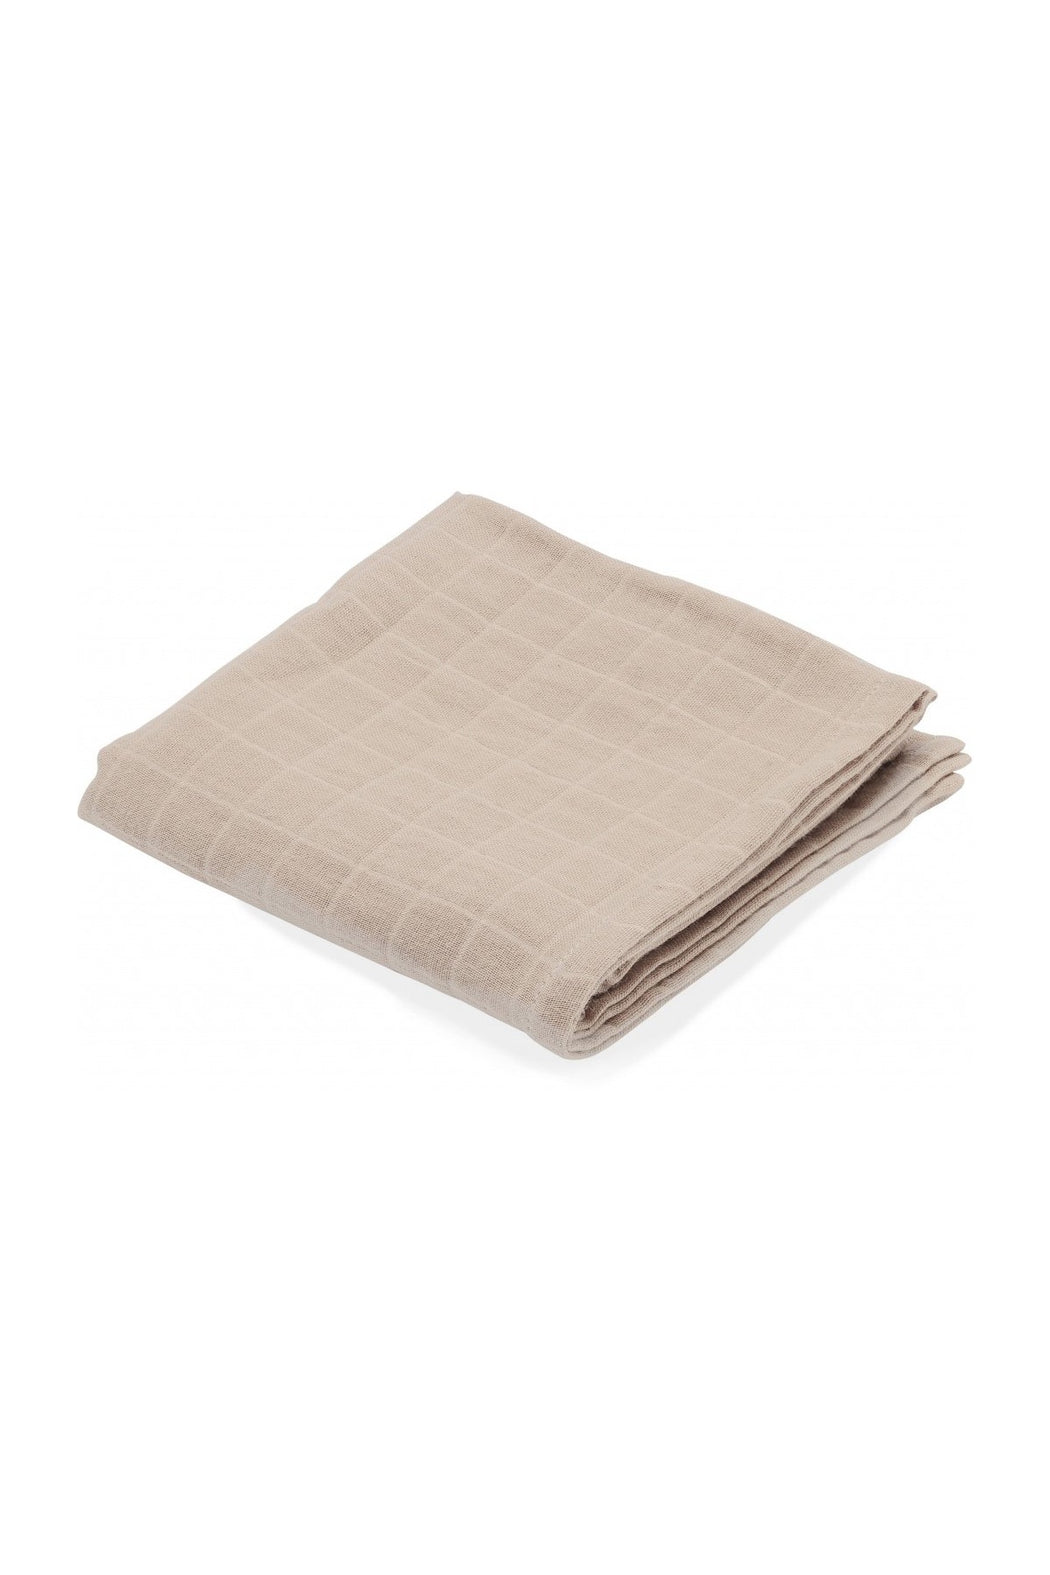 Muslin Cloth - Rose Dust